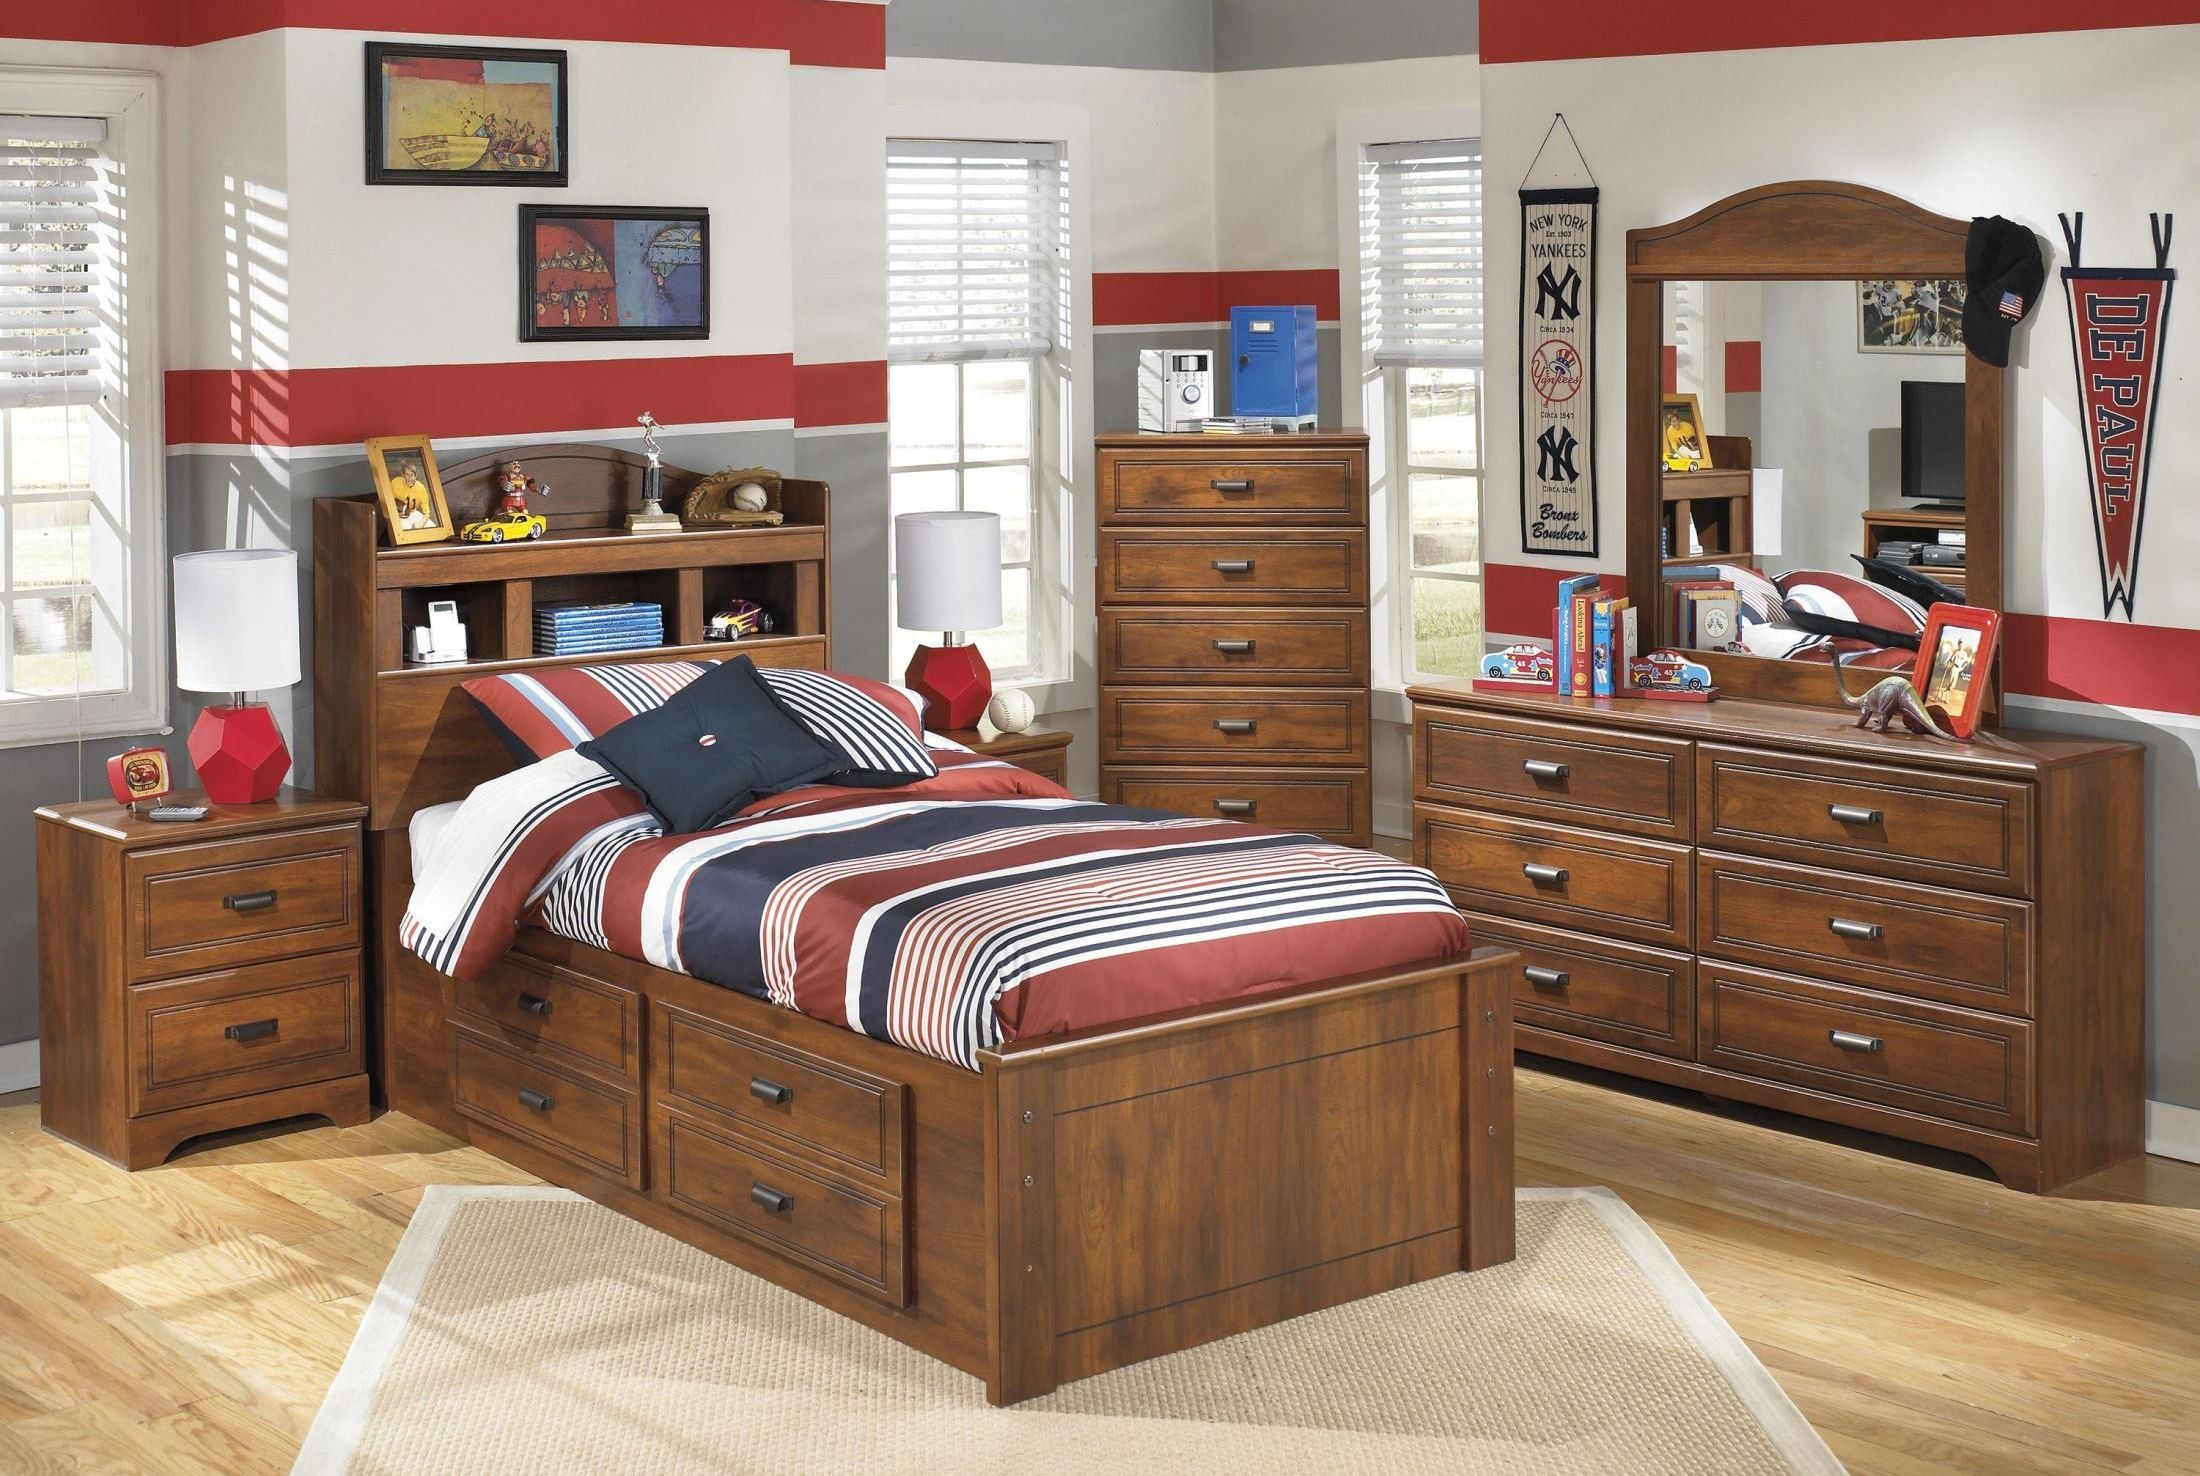 Barchan Youth Bookcase Storage Bedroom Set From Ashley Coleman Furniture